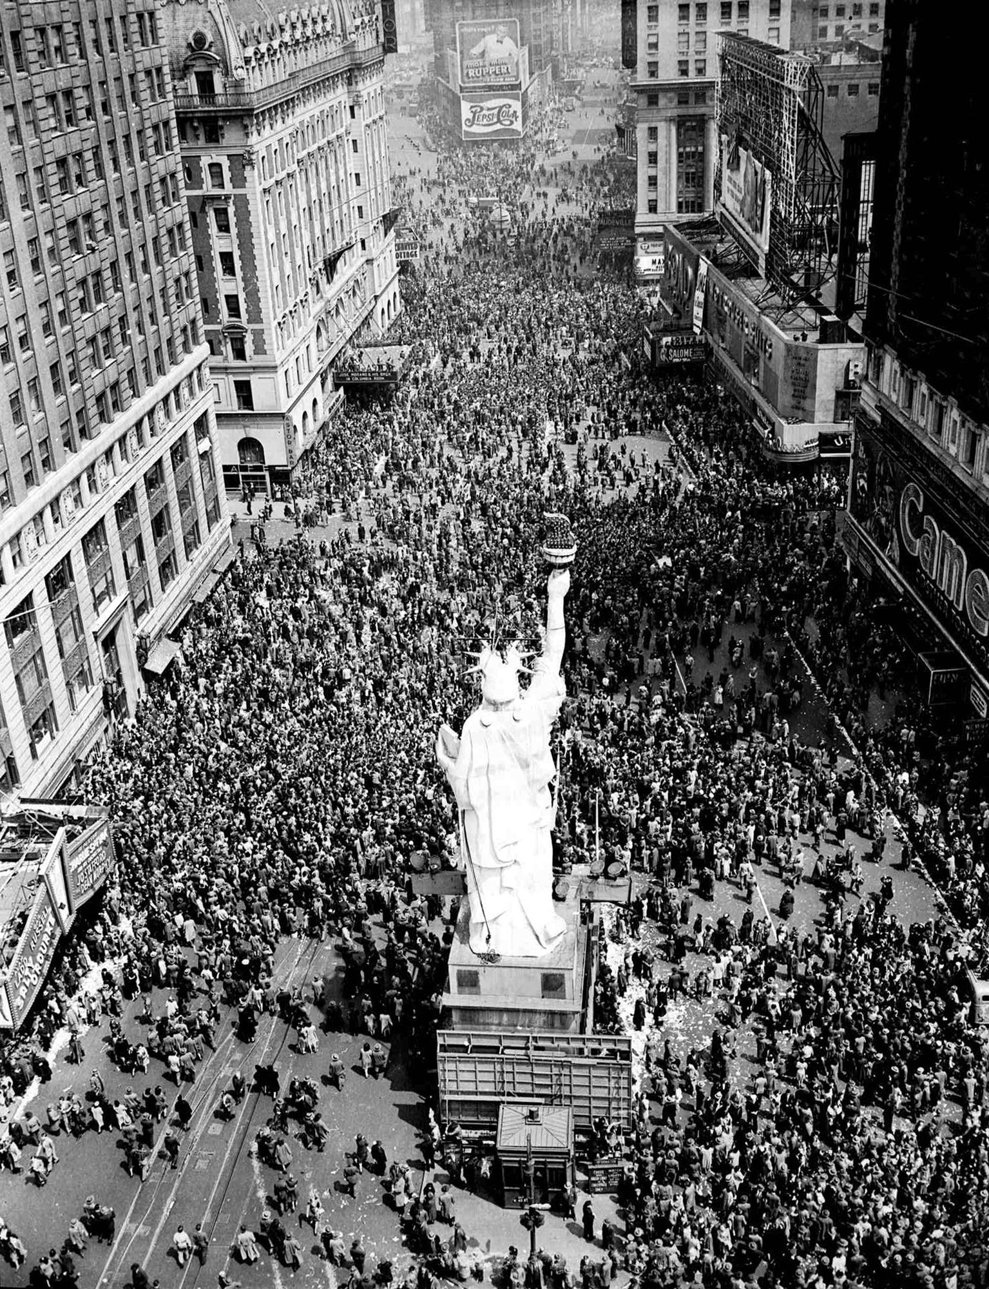 Mulţimea adunată în Times Square din New York City pe 8 mai 1945. (AP Photo/Matty Zimmerman)